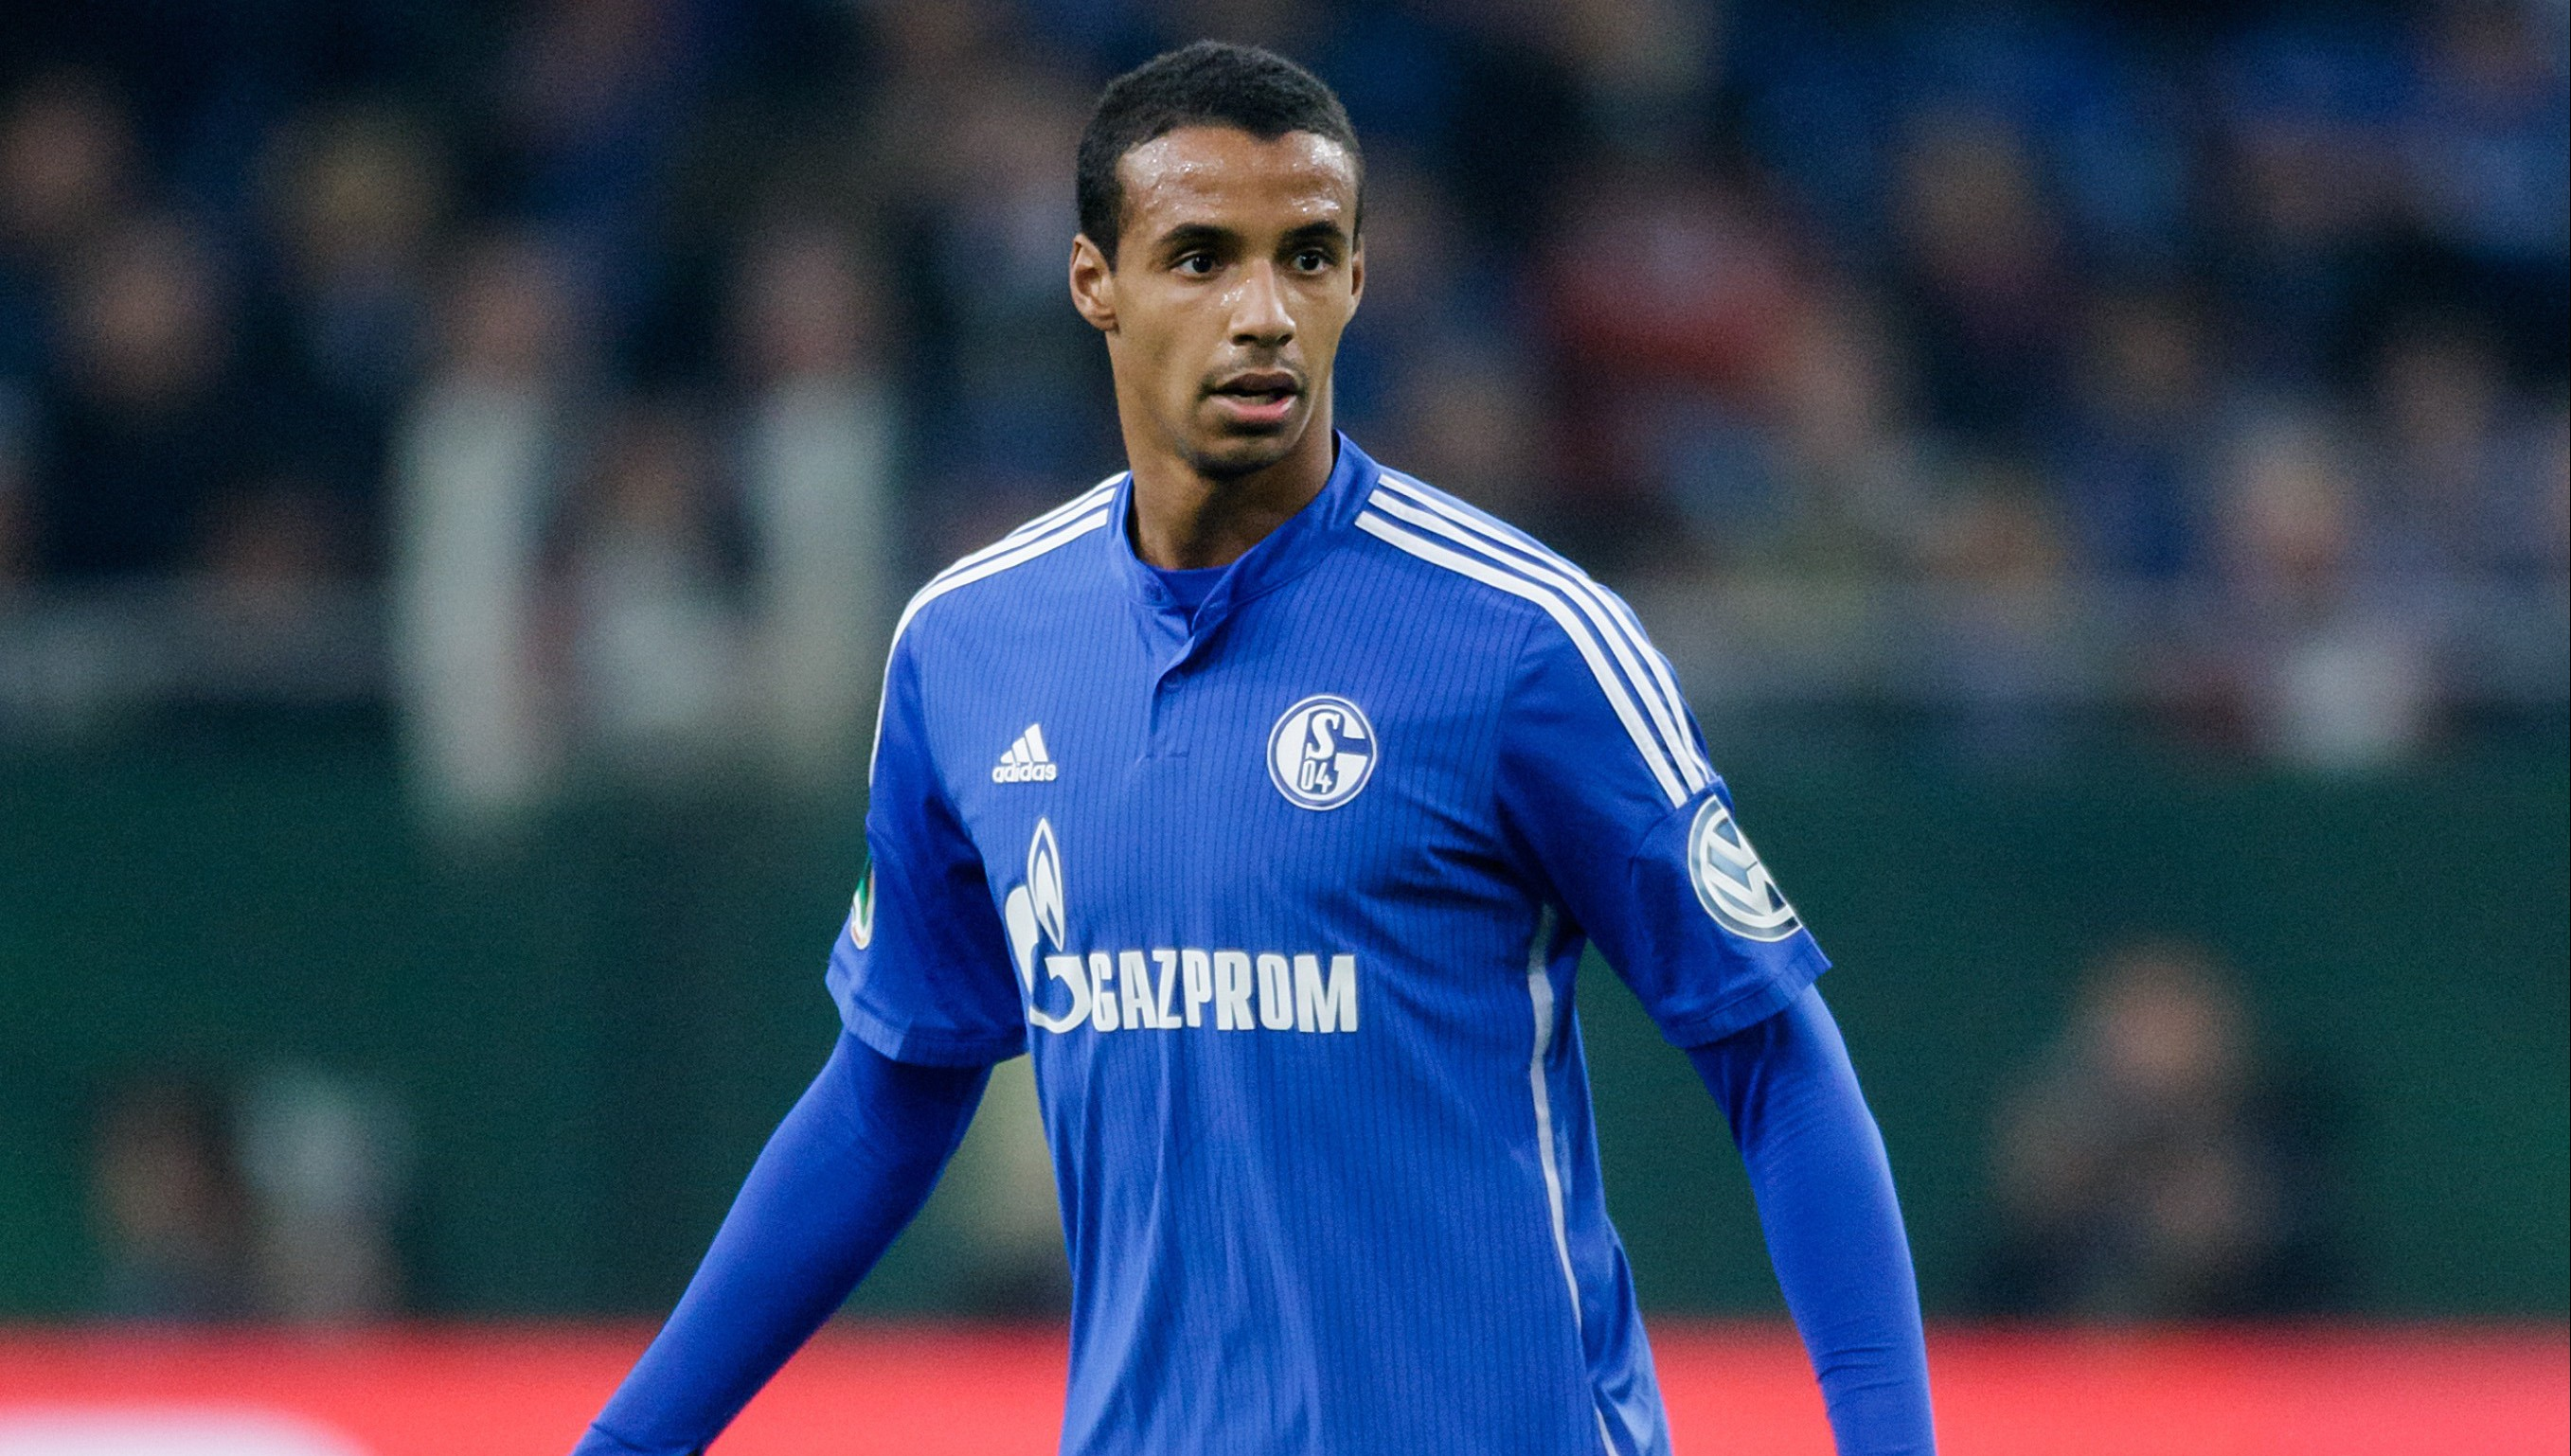 Joel Matip of Schalke 04 during the DFB Pokal match between Schalke 04 and Borussia Monchengladbach on October 28, 2015 at the Veltins Arena in Gelsenkirchen, Germany.(Photo by VI Images via Getty Images)